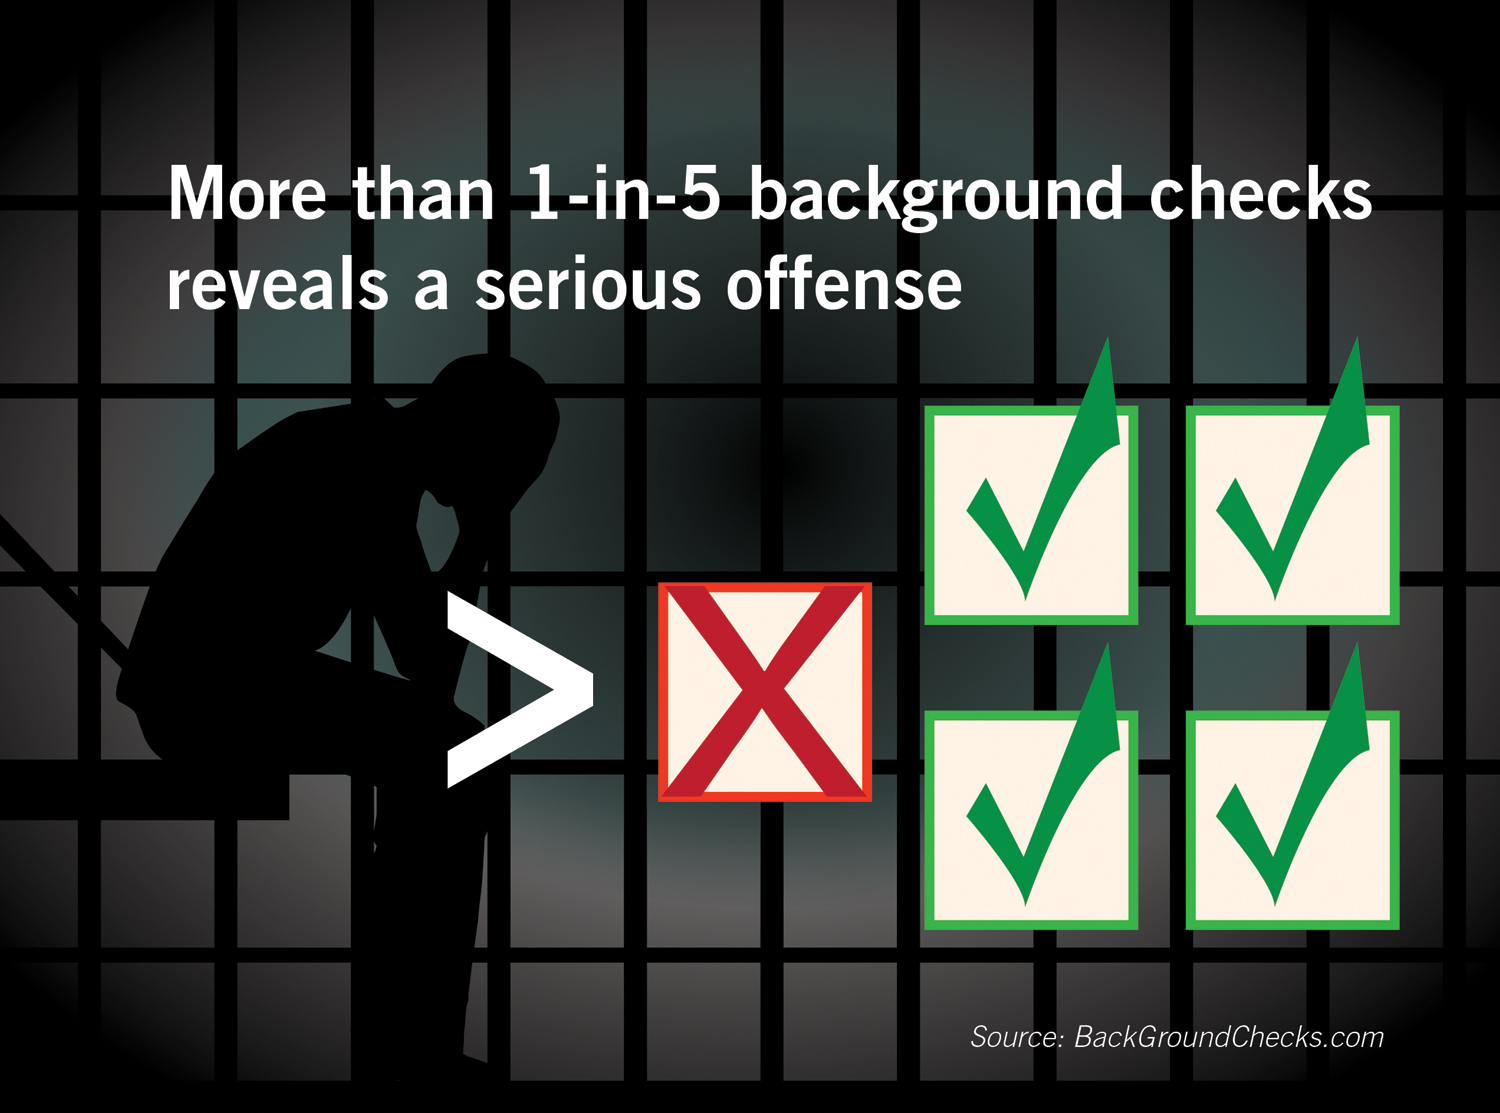 background check stat image